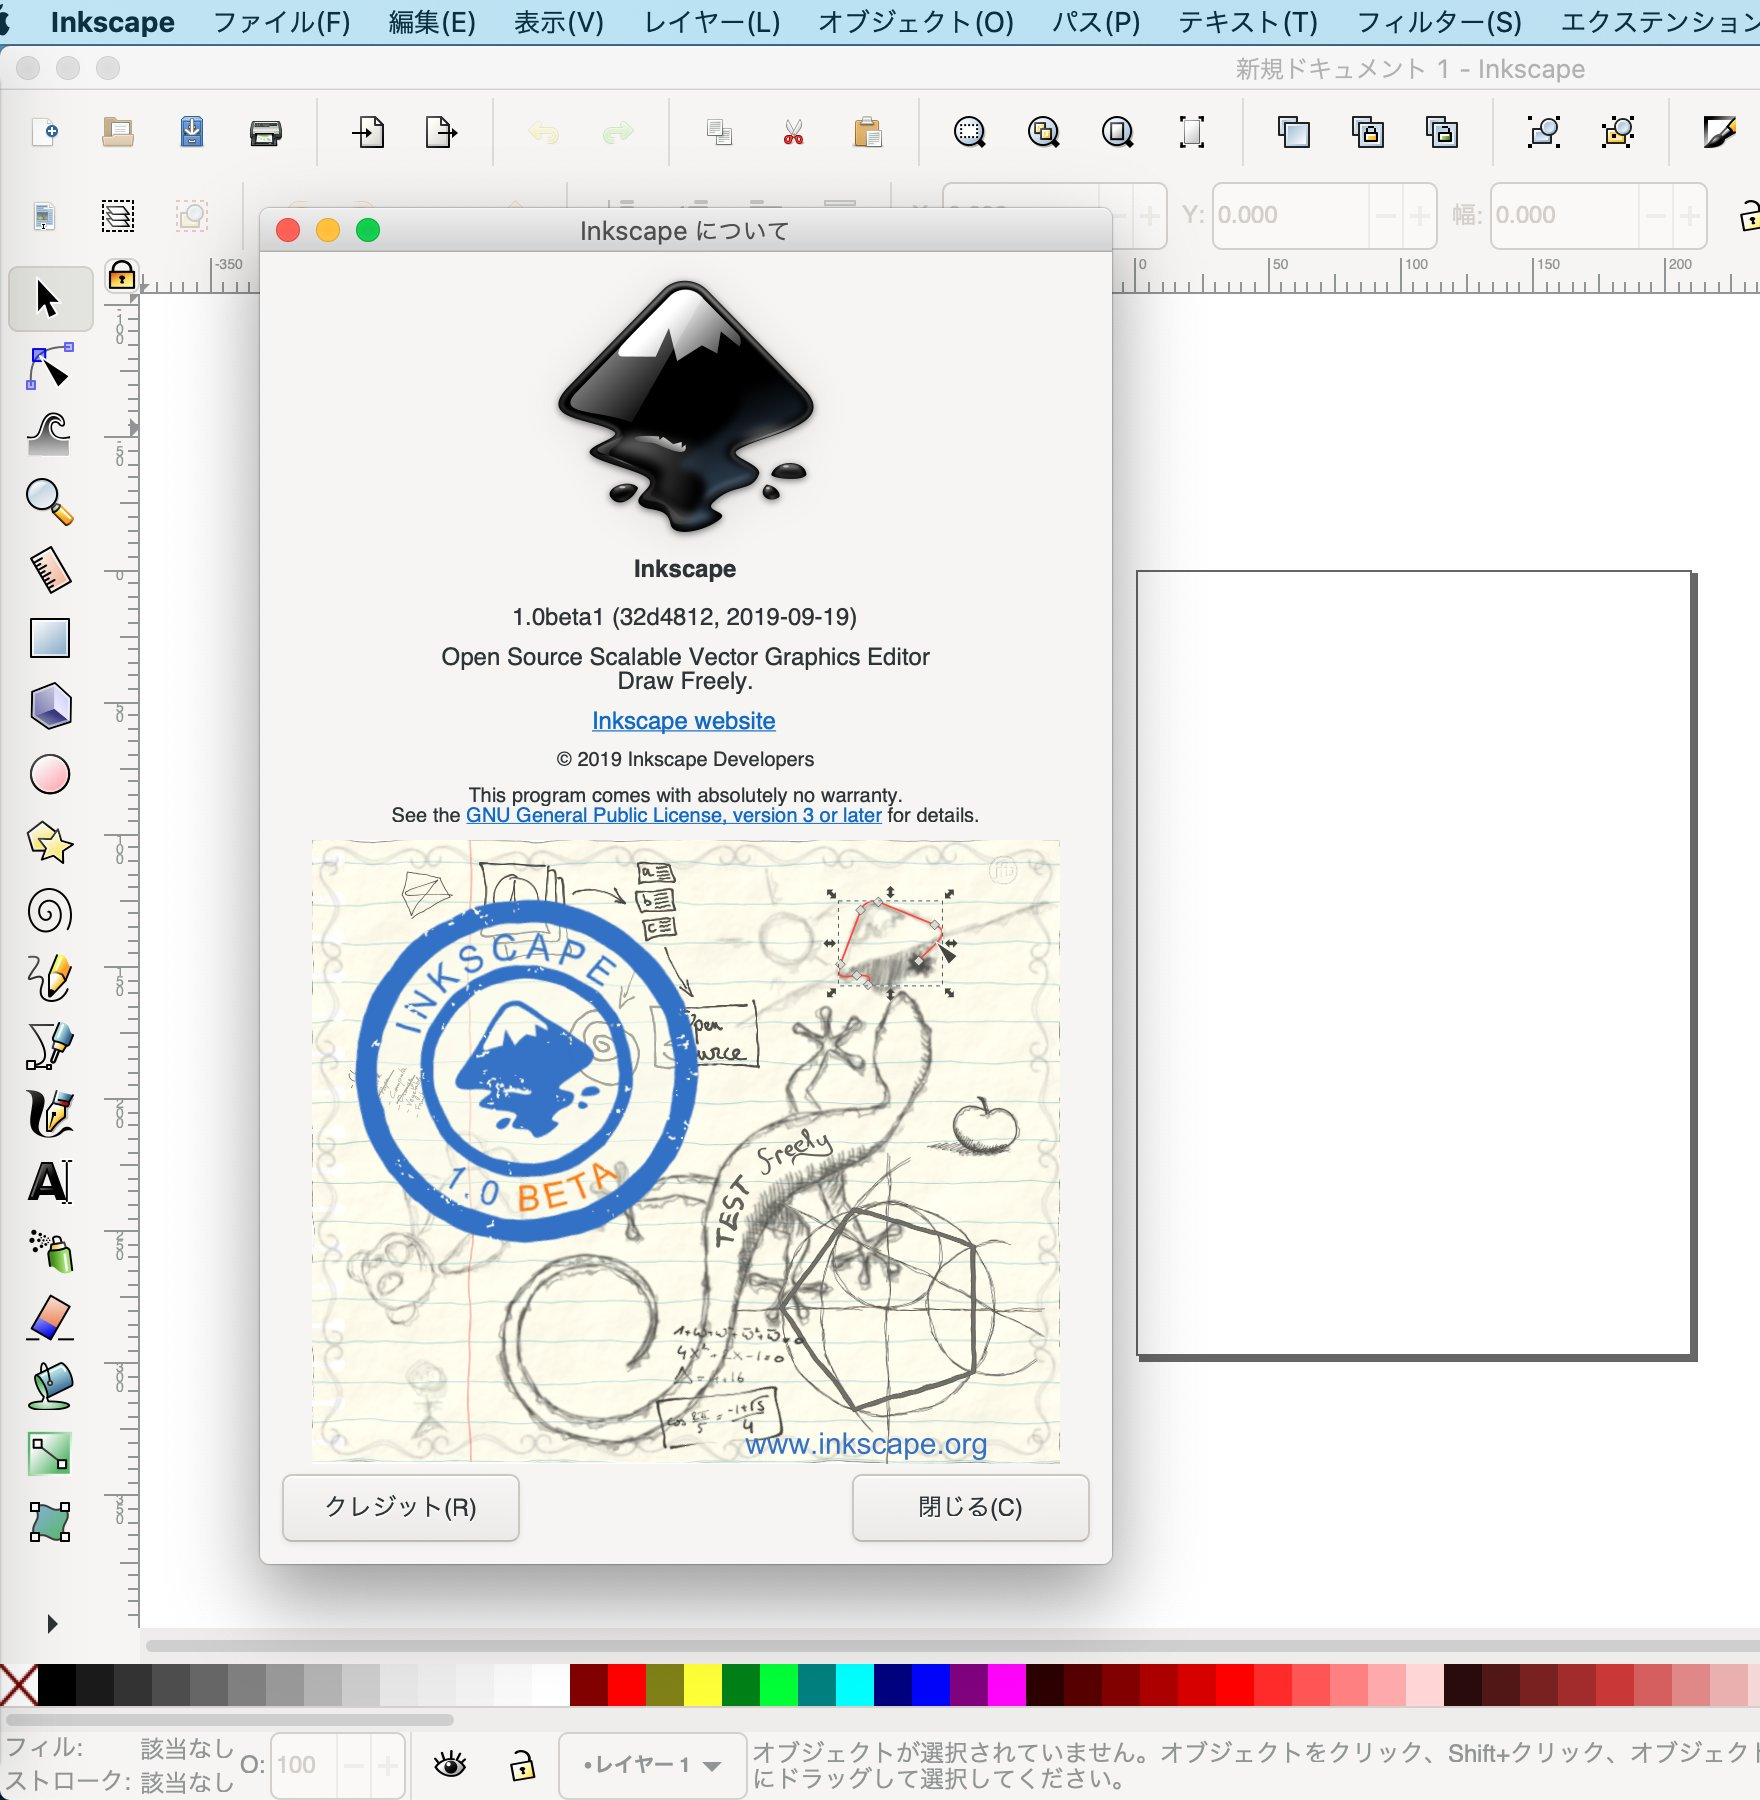 Inkscape 1.0 beta on macOS Catalina 起動できた。 https://t.co/Swa0sbnhbC